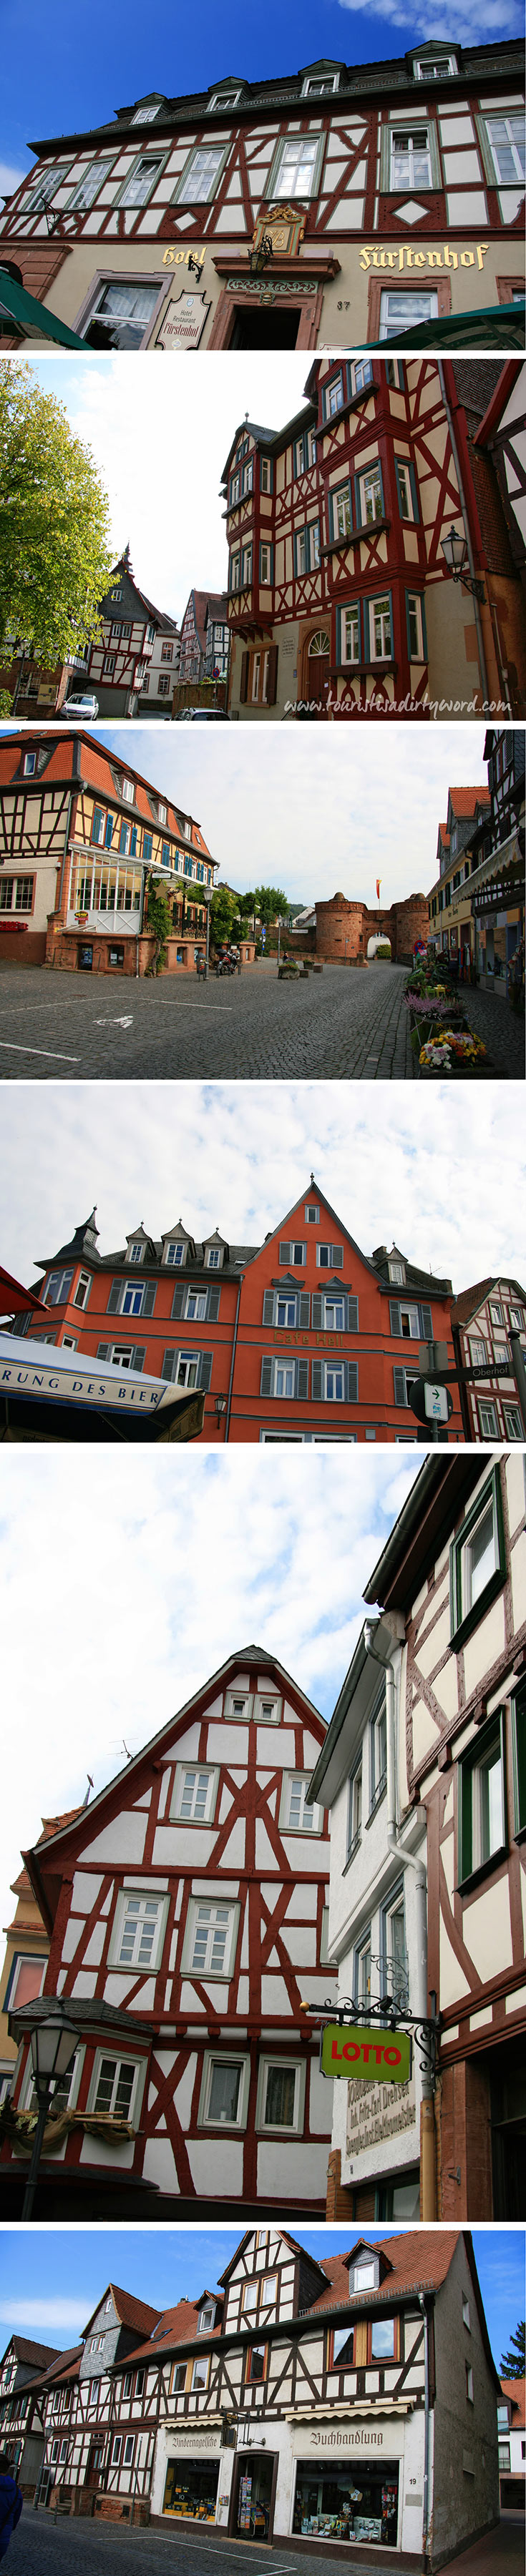 Discover the Half-timbered Houses in Buedingen, Germany